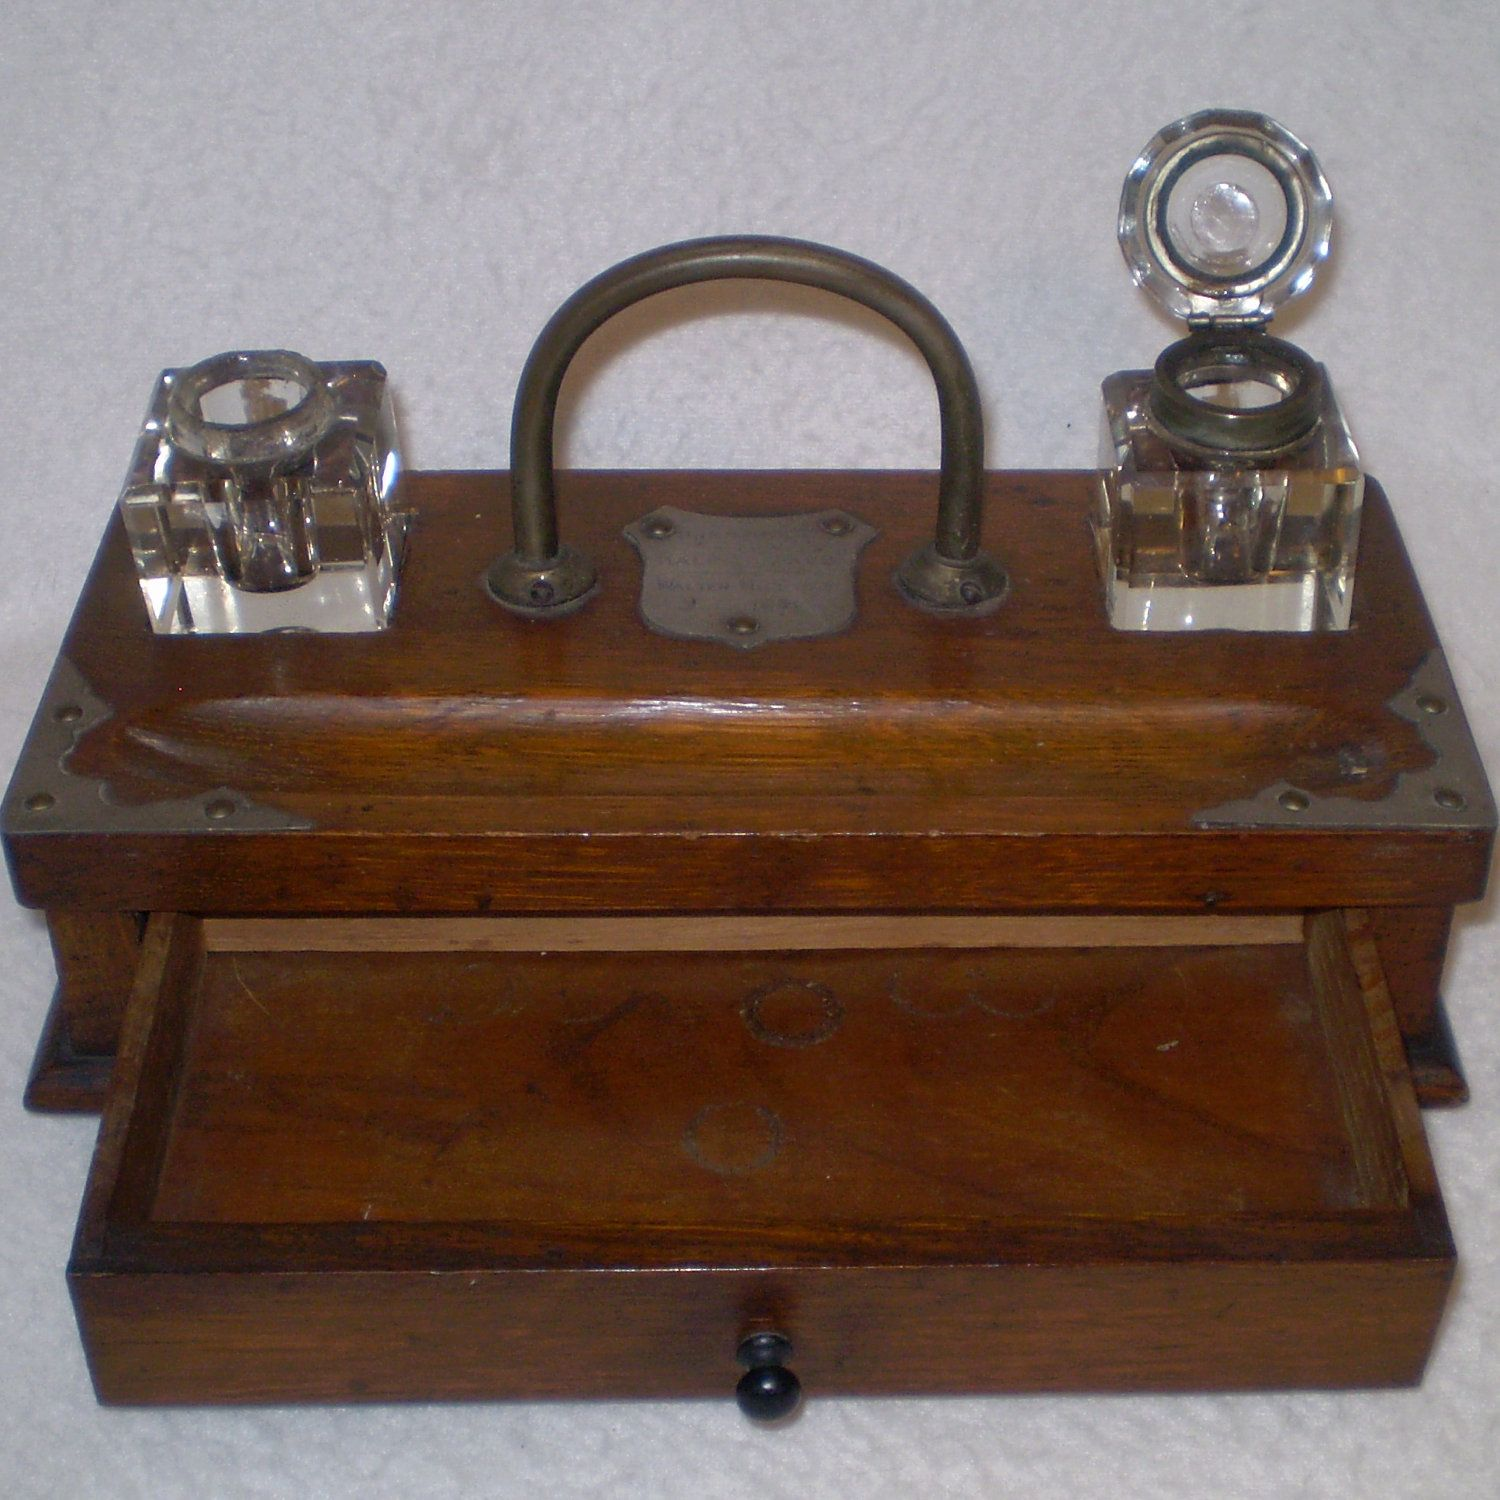 Vintage Antique Writing Station Pen And Ink Station From